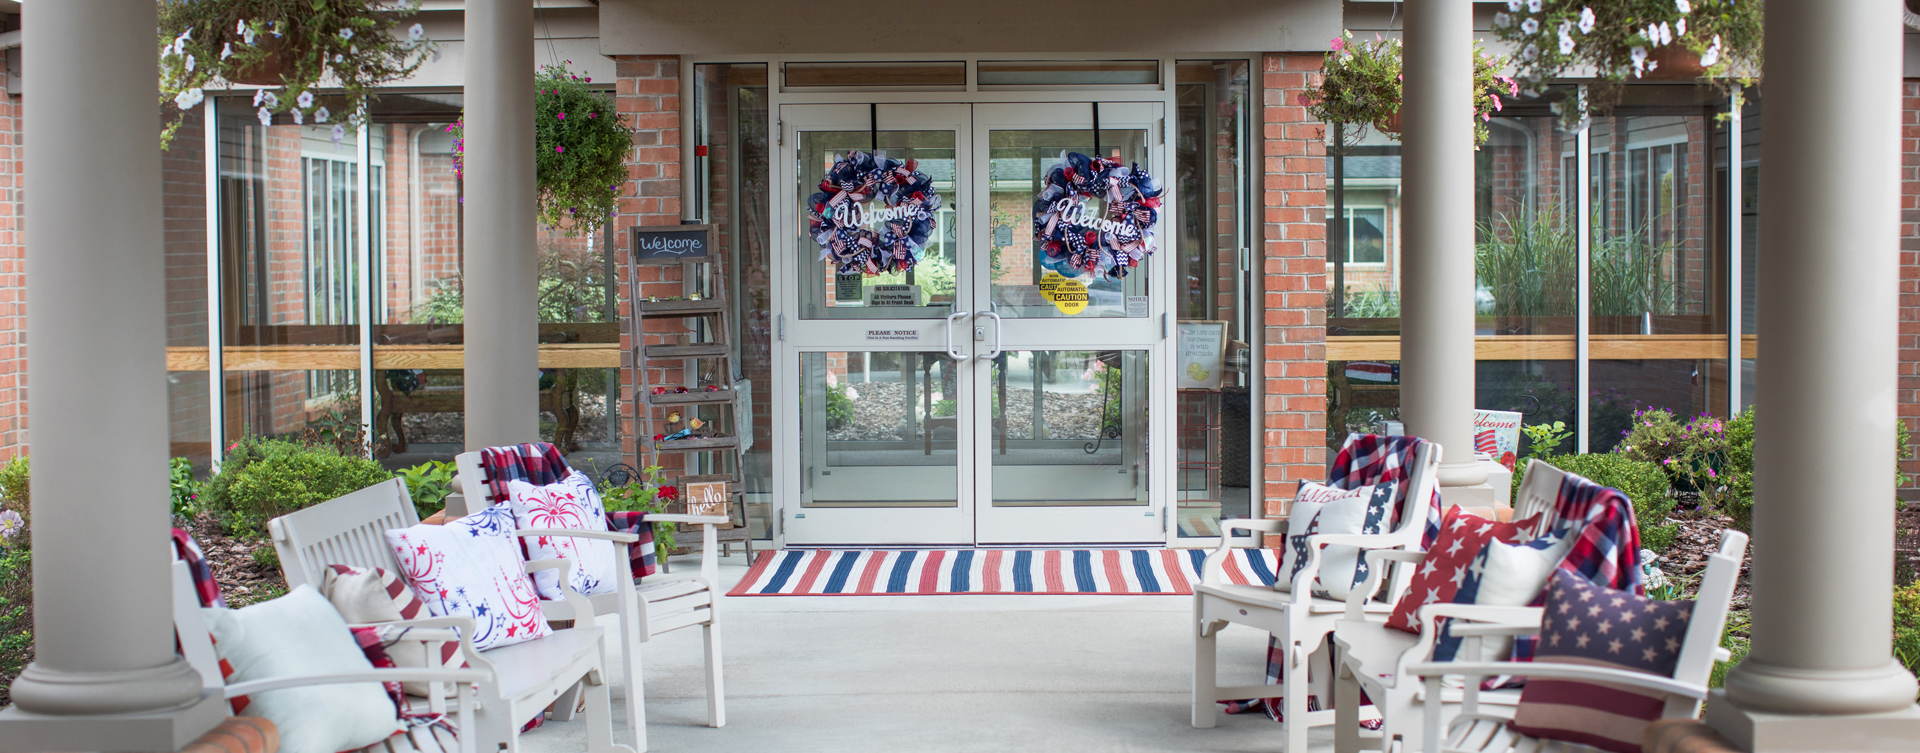 Relax in your favorite chair on the porch at Bickford of Lancaster